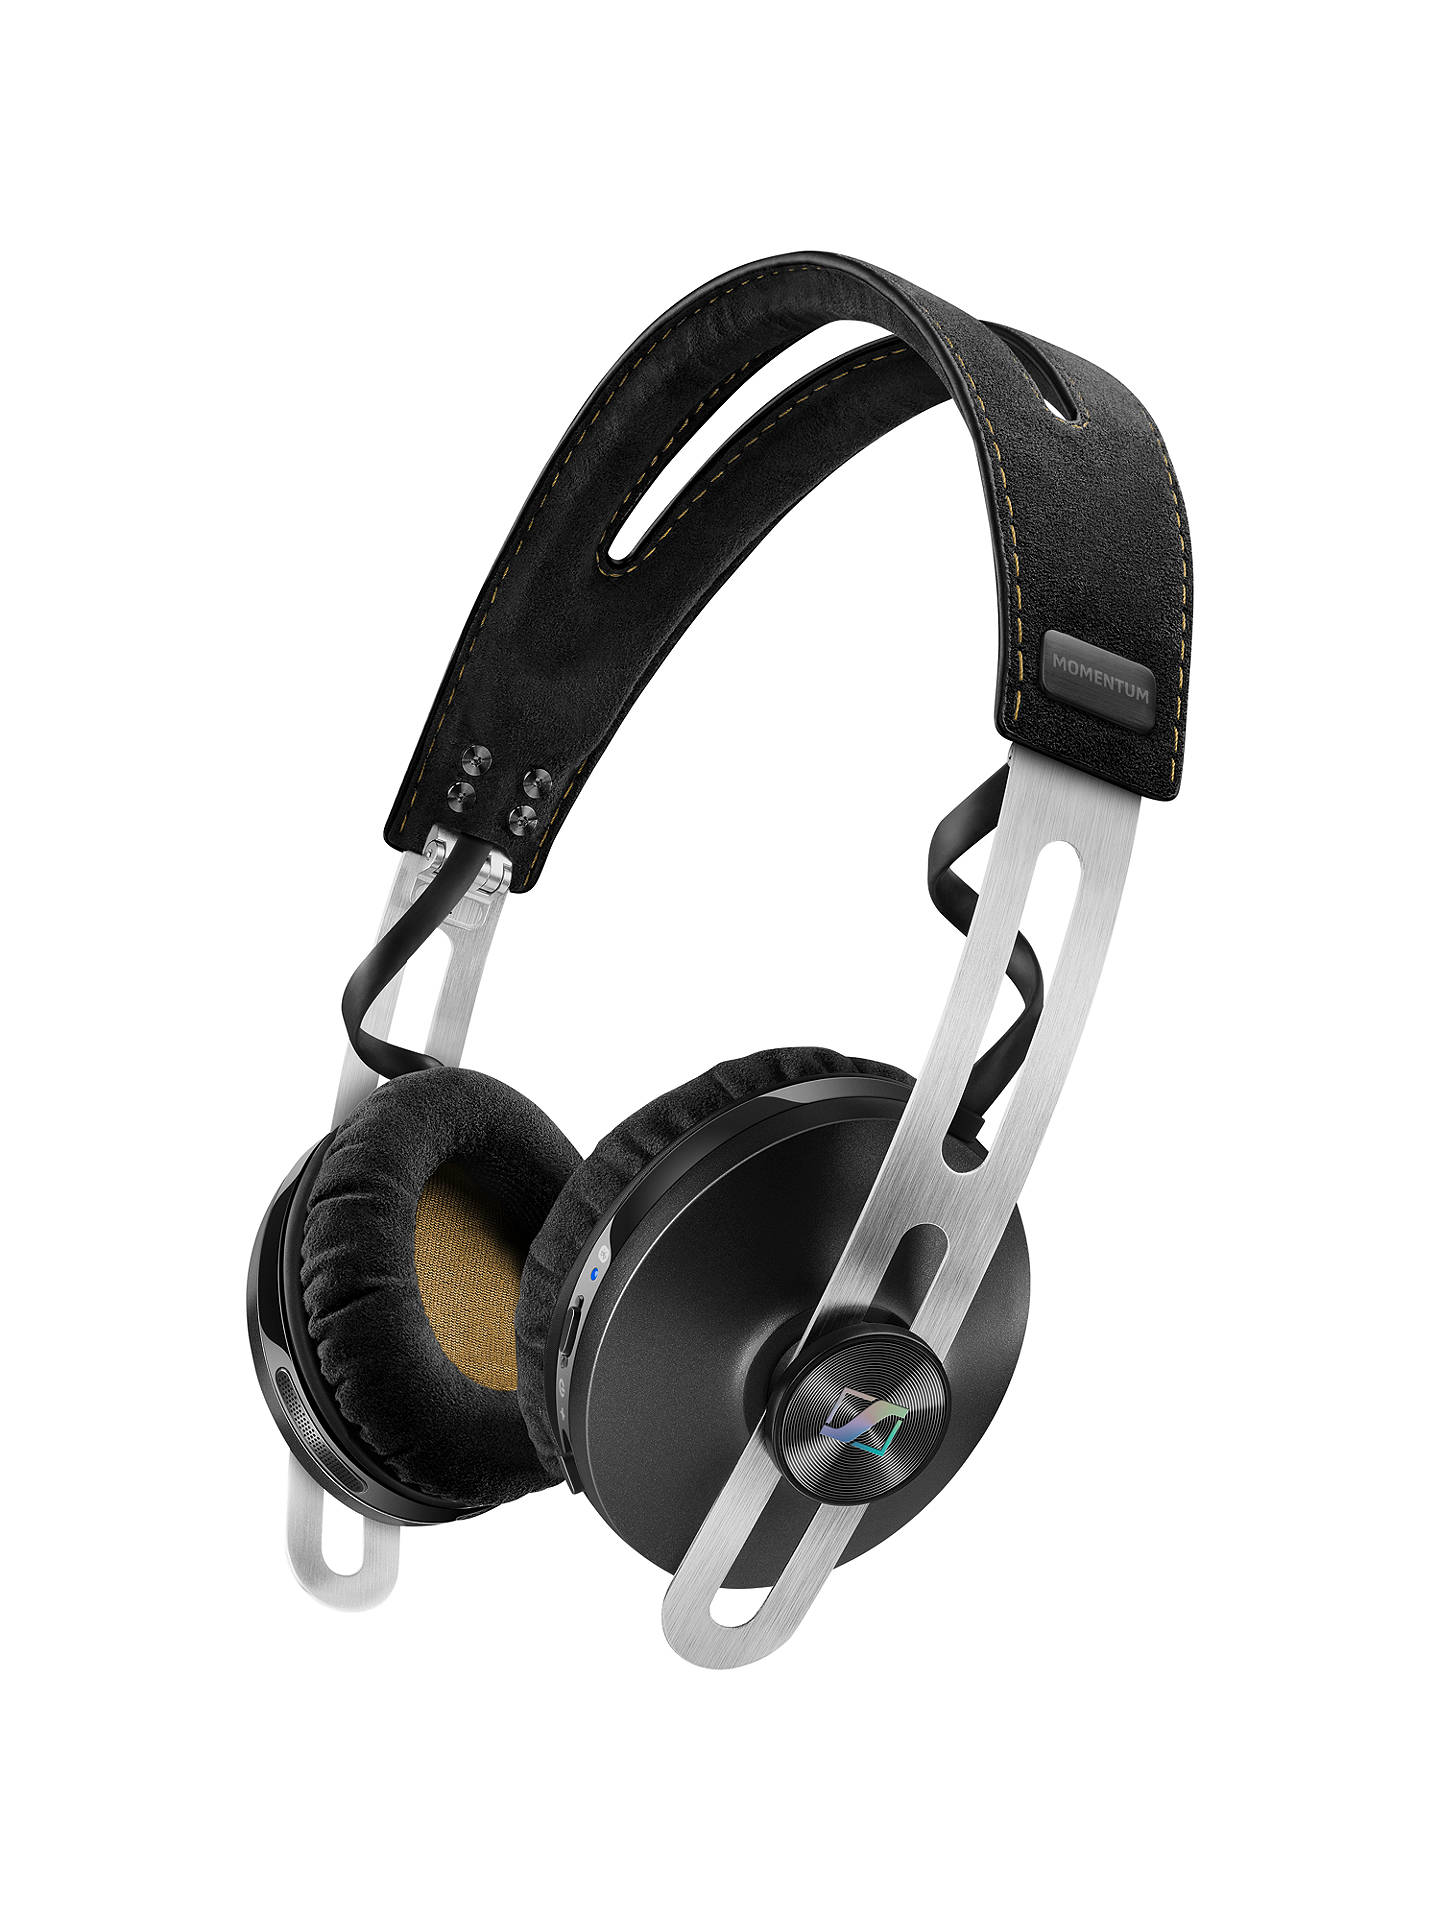 BuySennheiser Momentum 2.0 Wireless On-Ear Headphones with In-line Mic/remote, Black Online at johnlewis.com